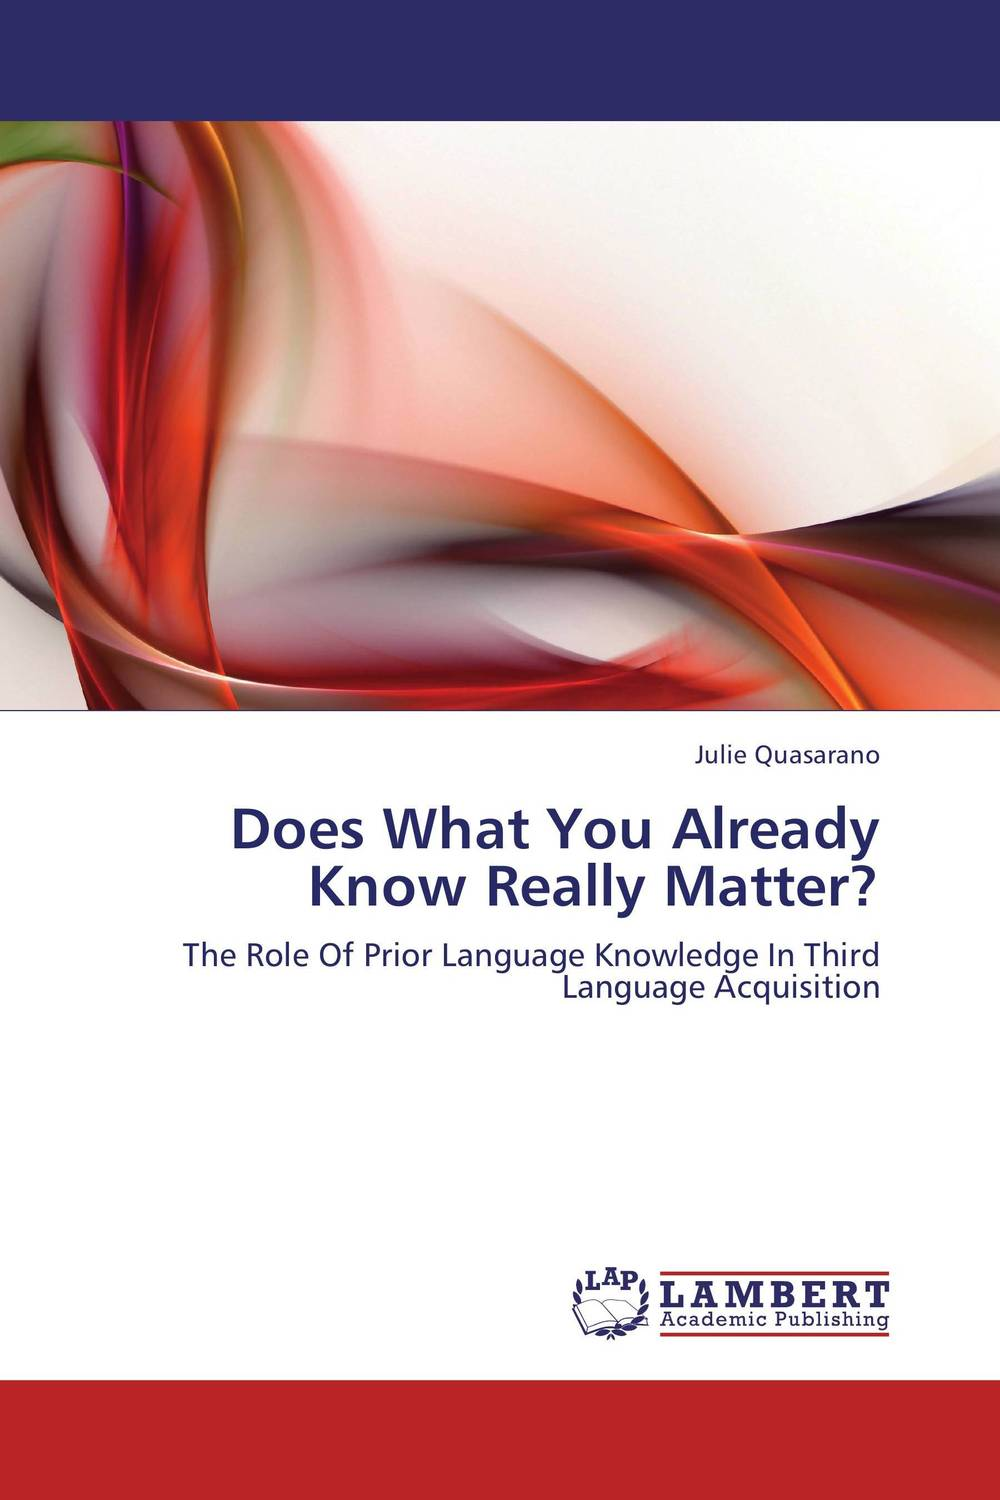 Does What You Already Know Really Matter? constructing a language – a usage–based theory of language acquisition